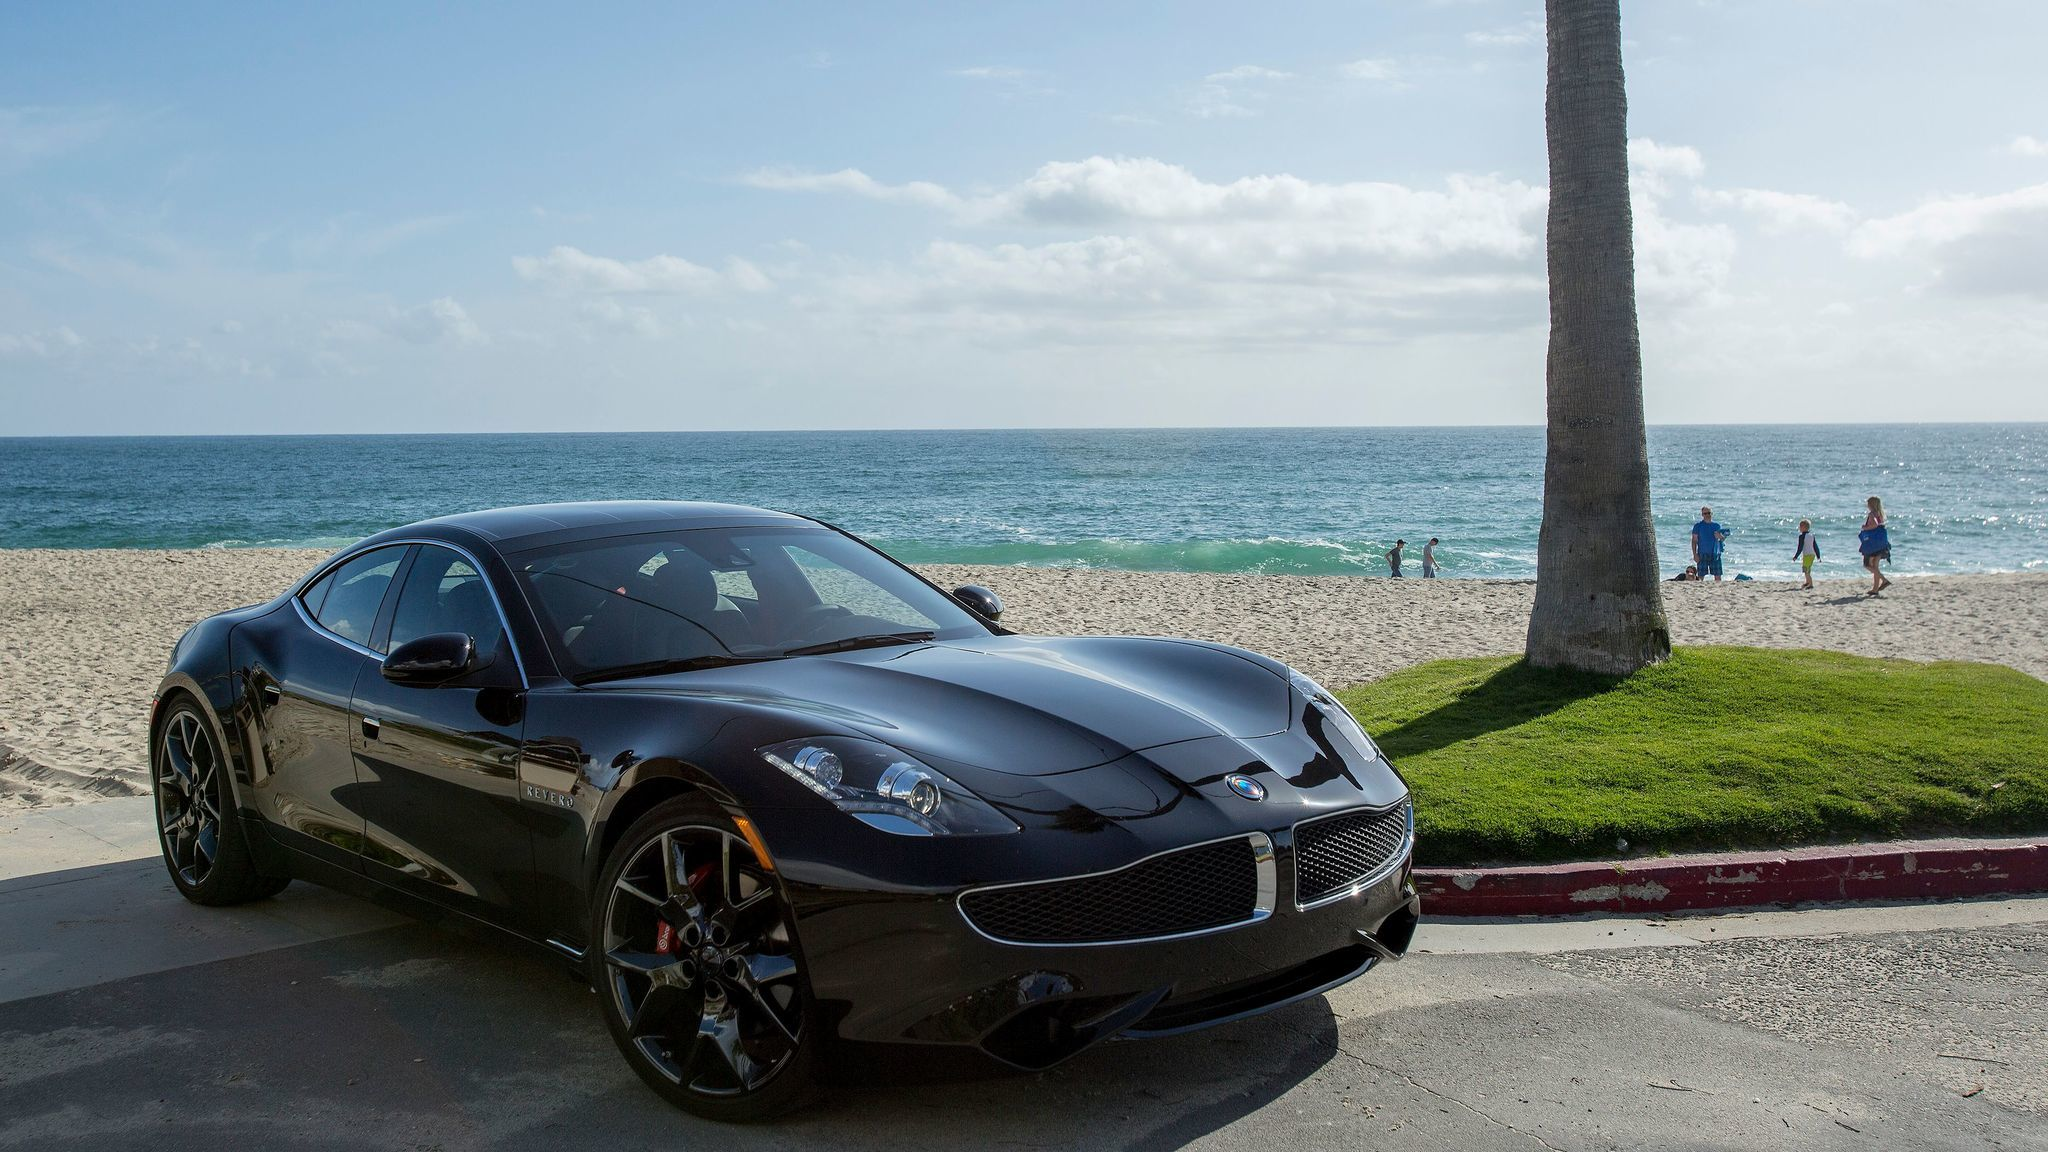 2018 Karma Revero is an 'ultra-luxury' hybrid